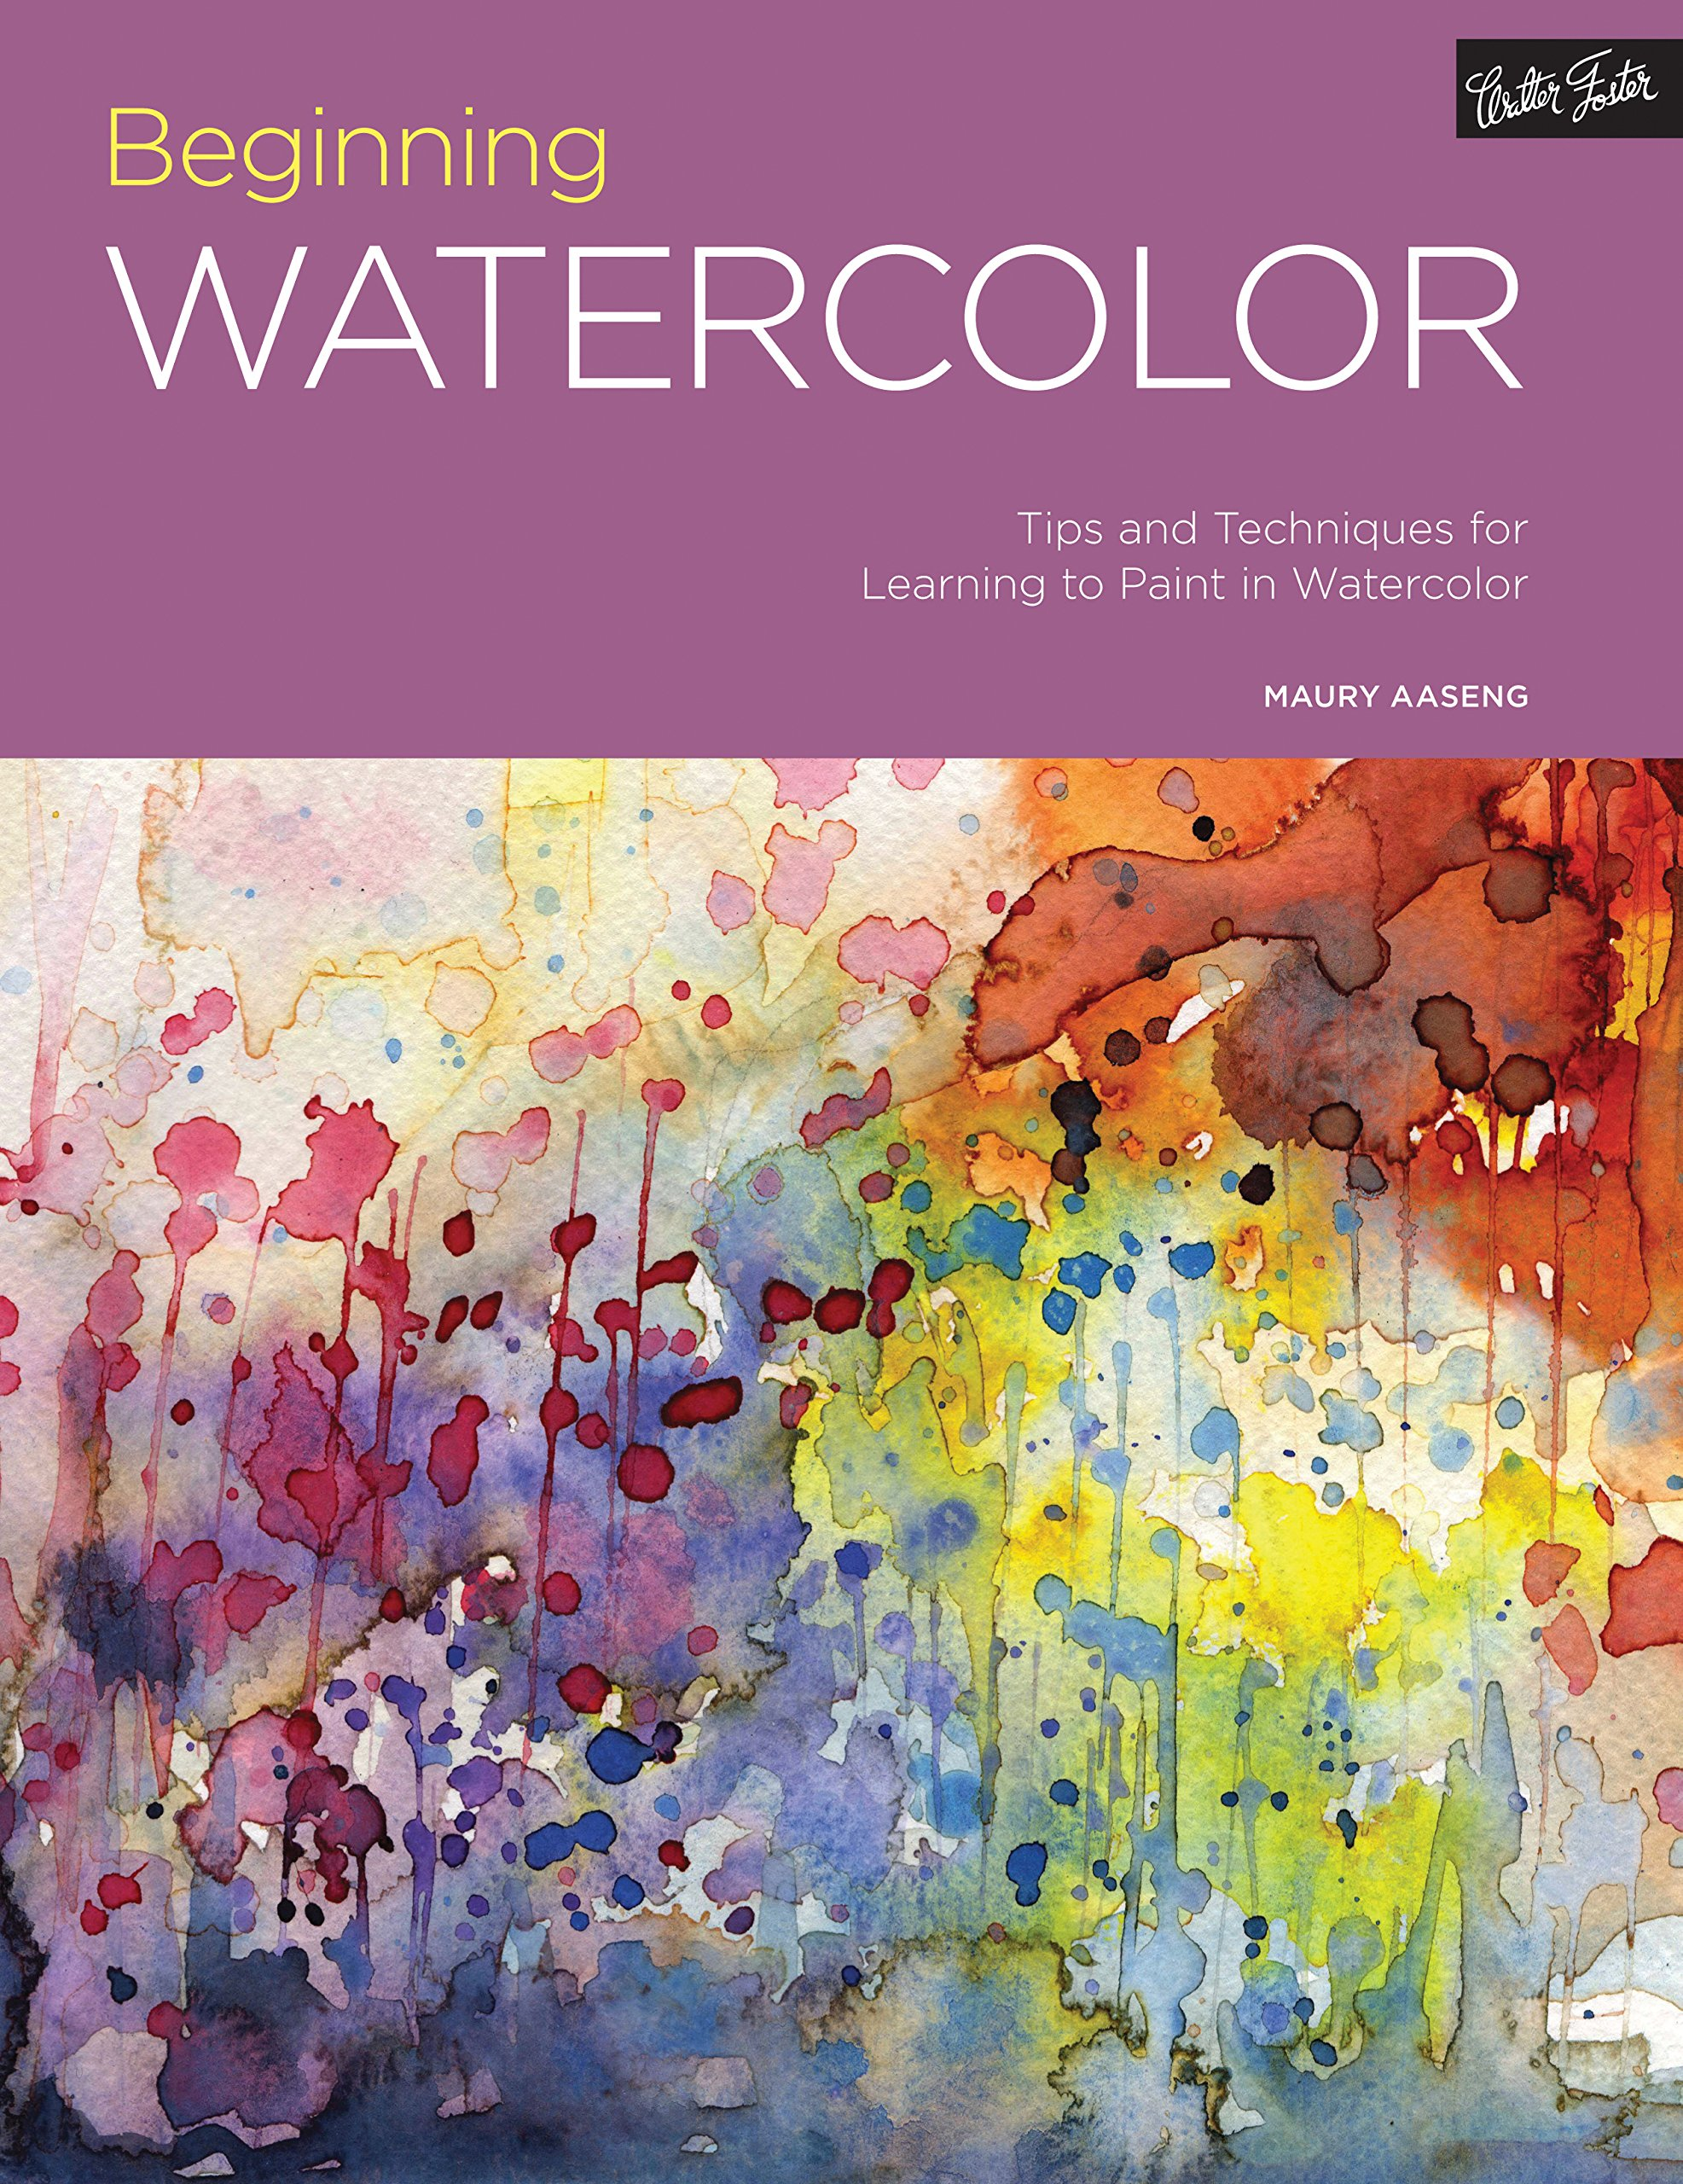 Watercolor artist magazine subscription - Portfolio Beginning Watercolor Tips And Techniques For Learning To Paint In Watercolor Maury Aaseng 9781633221079 Amazon Com Books